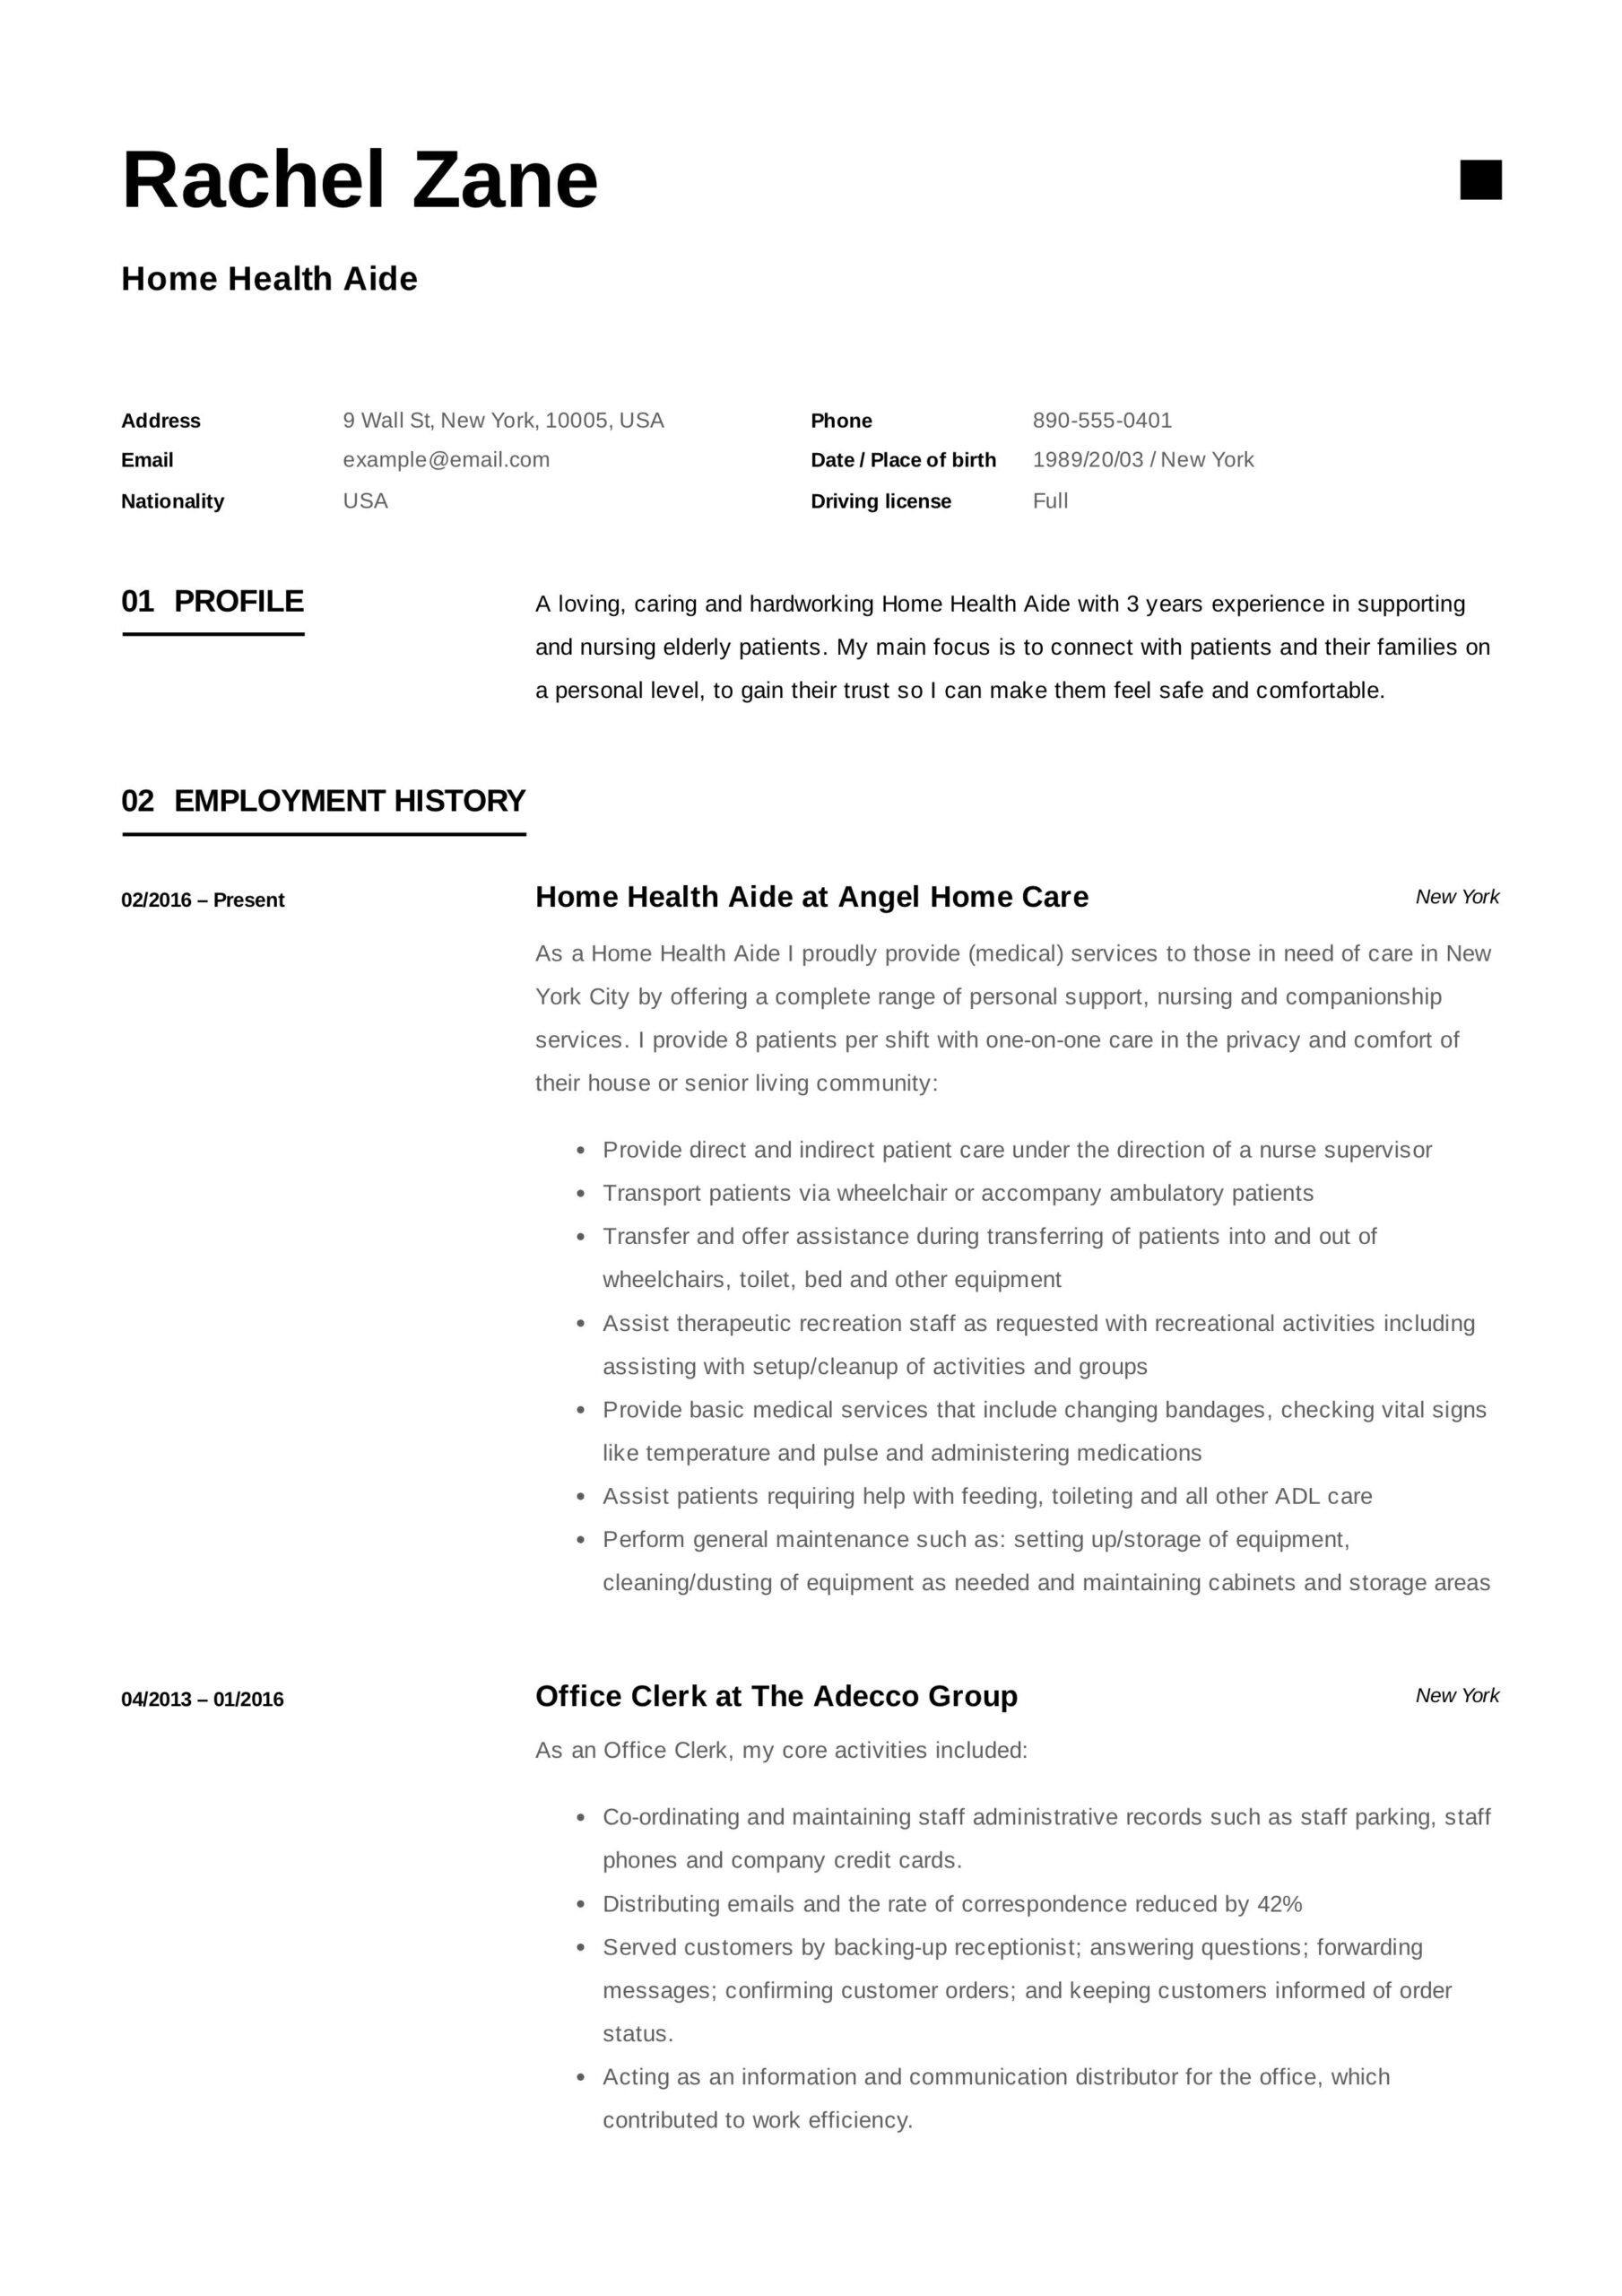 home health aide resume template graphic design examples sample email of center manager Resume Home Health Aide Resume Sample